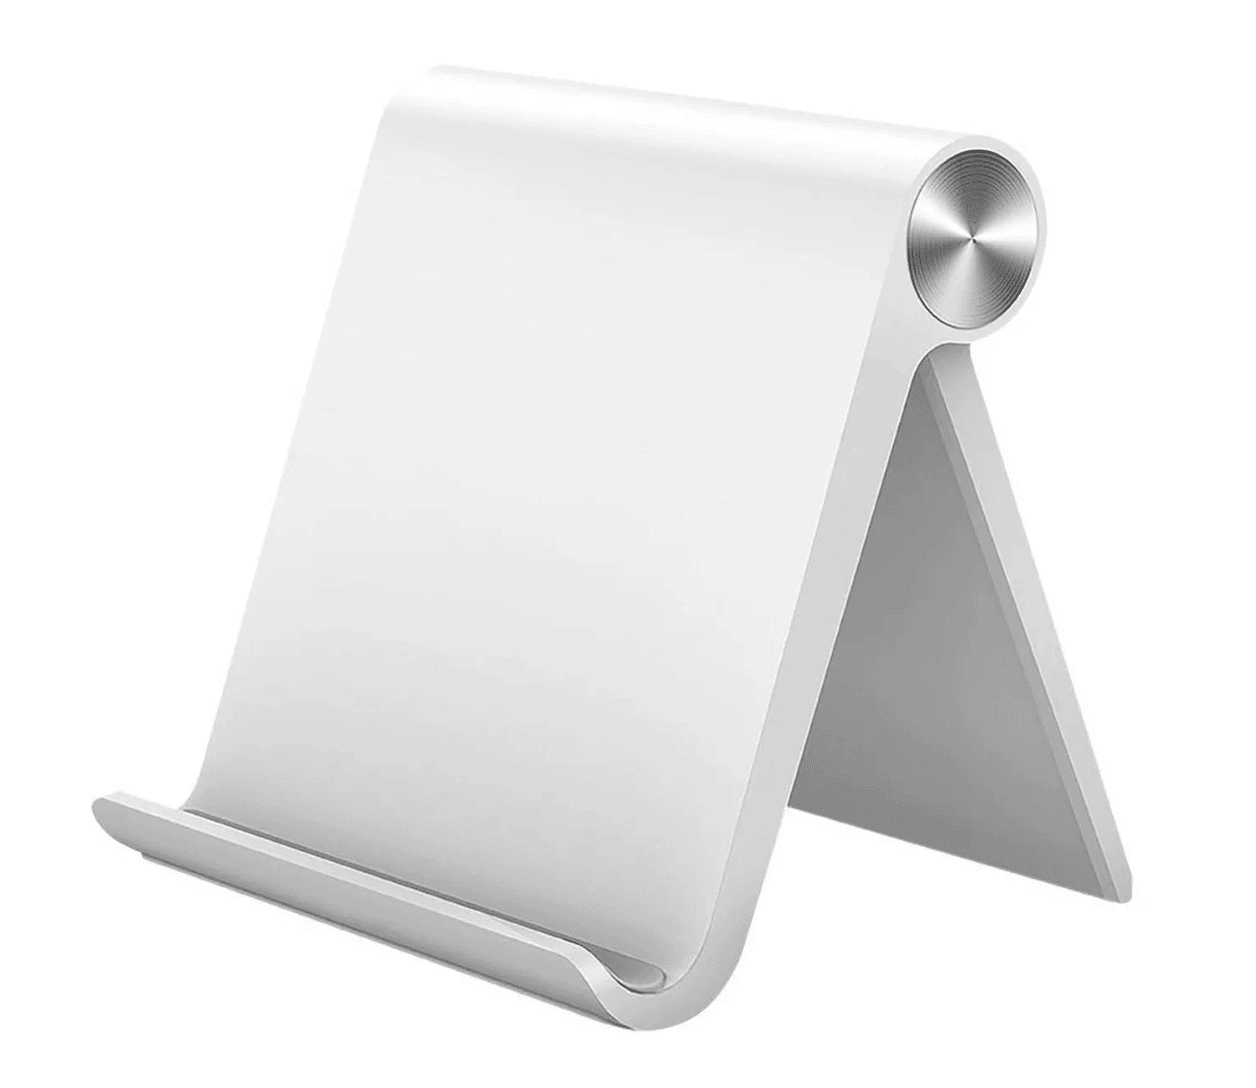 angled cell phone stand